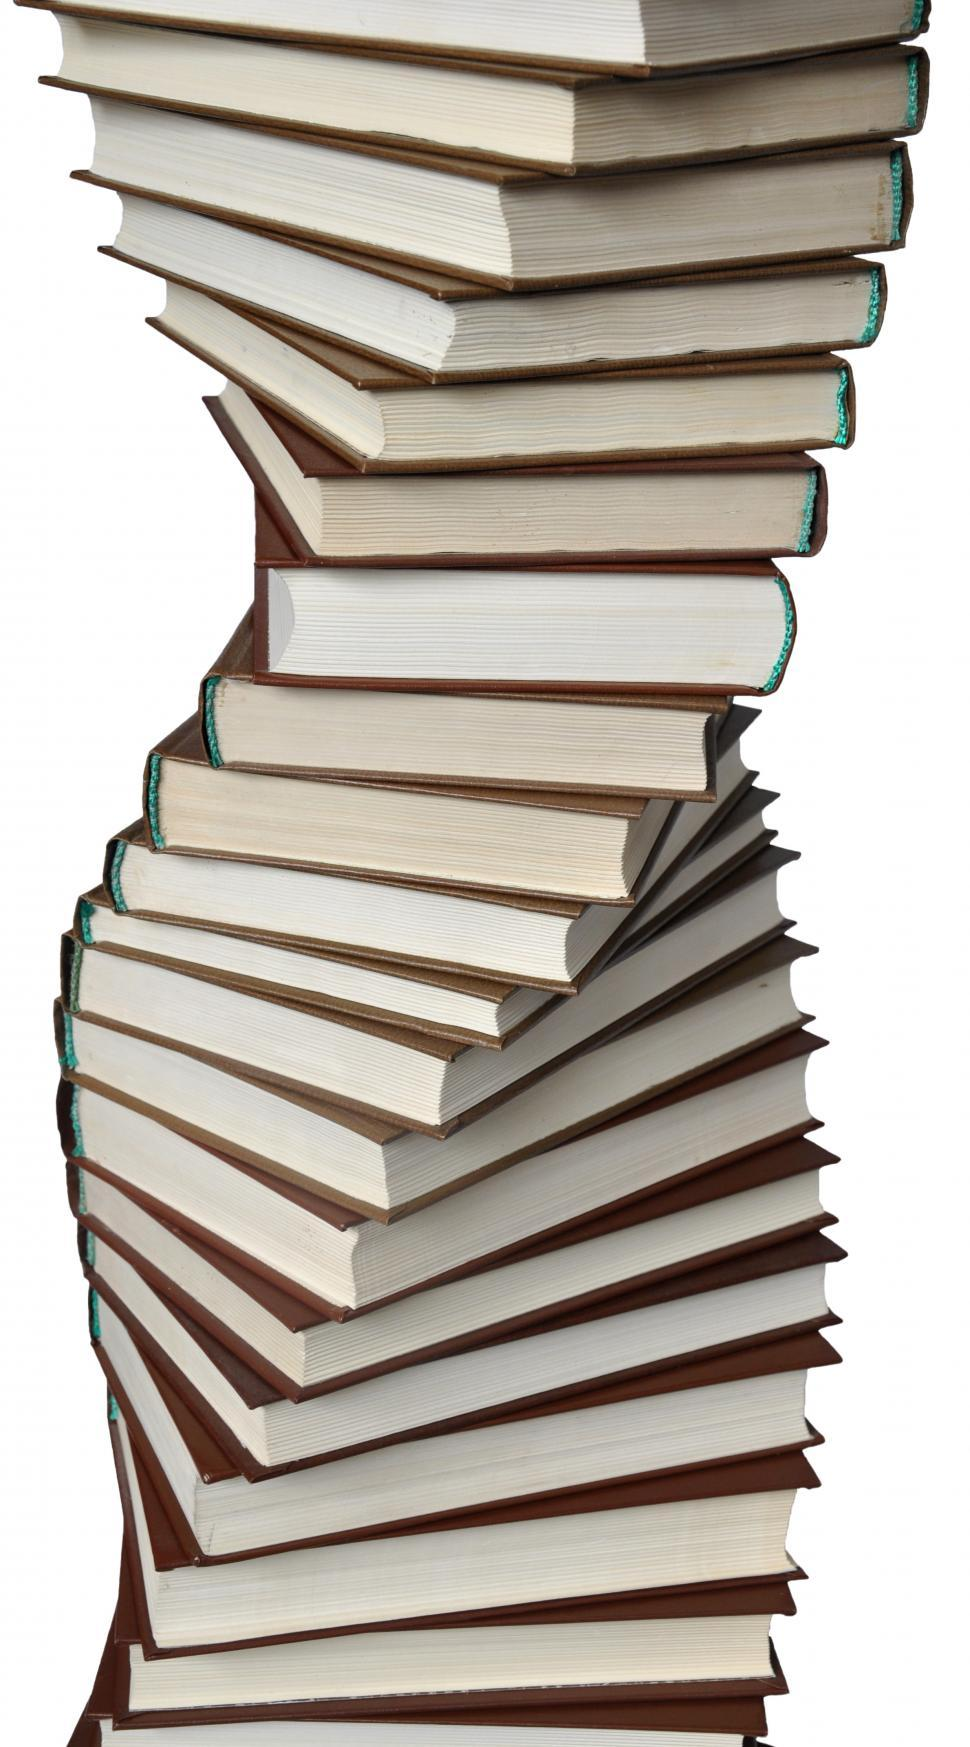 Download Free Stock HD Photo of Spiral of books Online